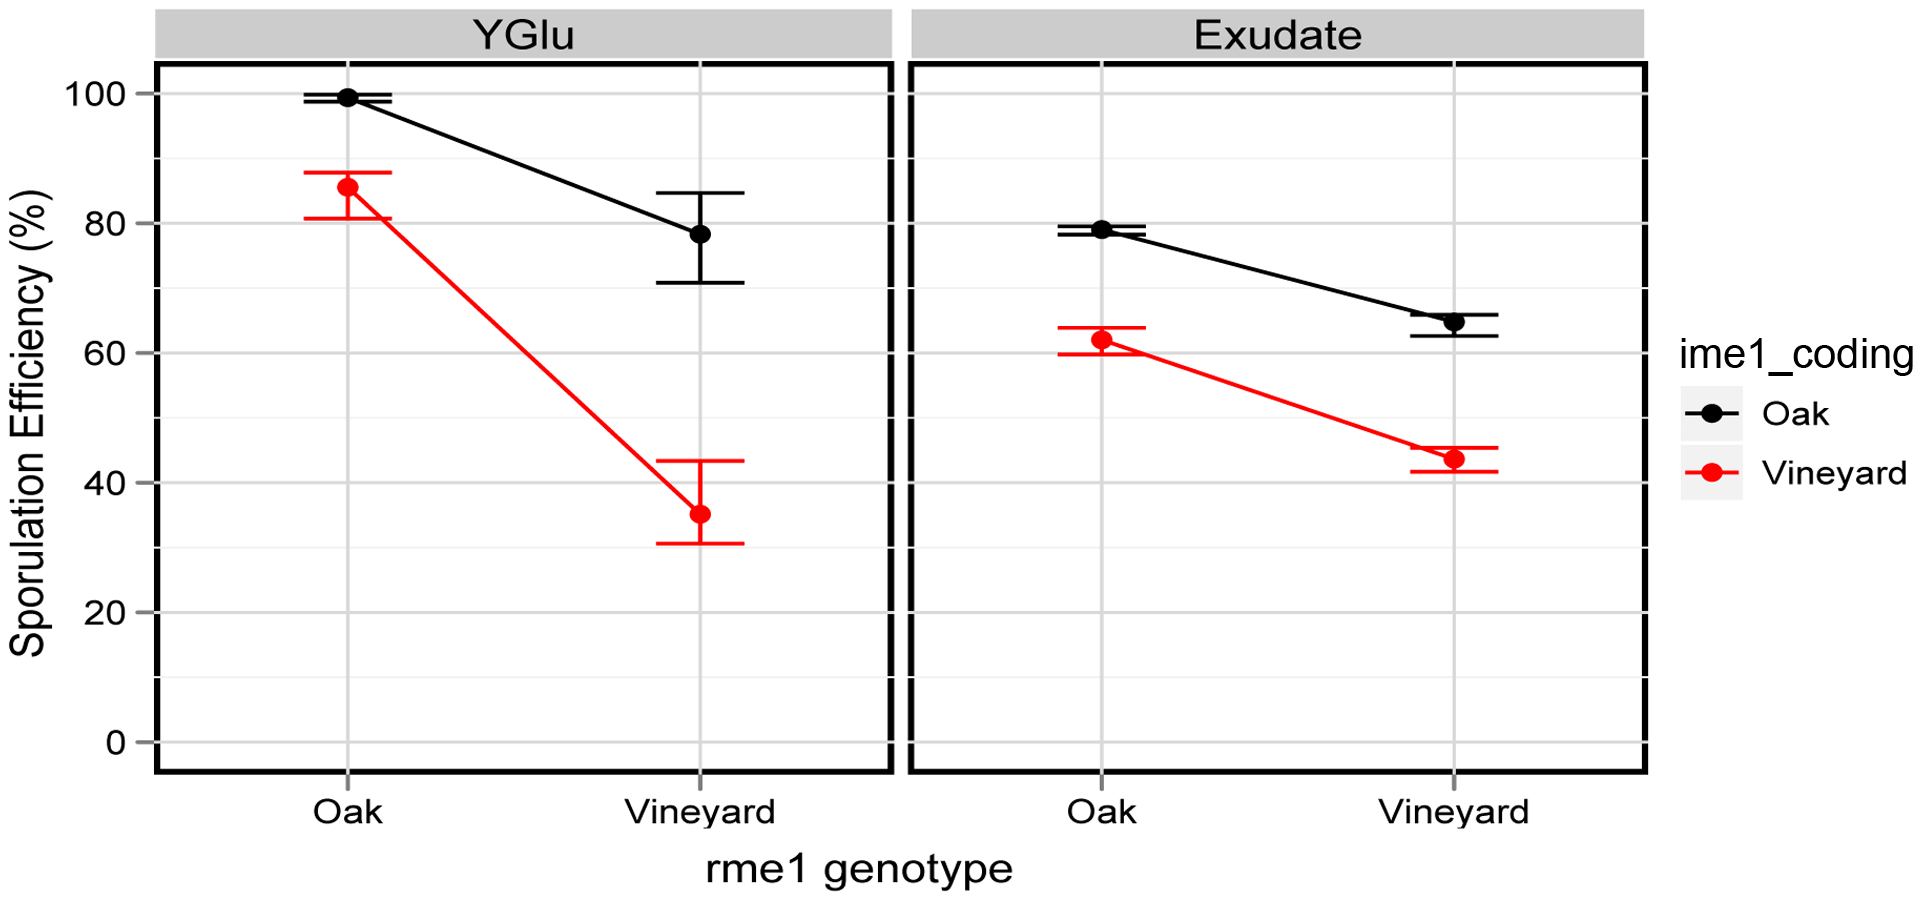 The <i>rme1:ime1_coding</i> interaction is environment-dependent in the oak background.